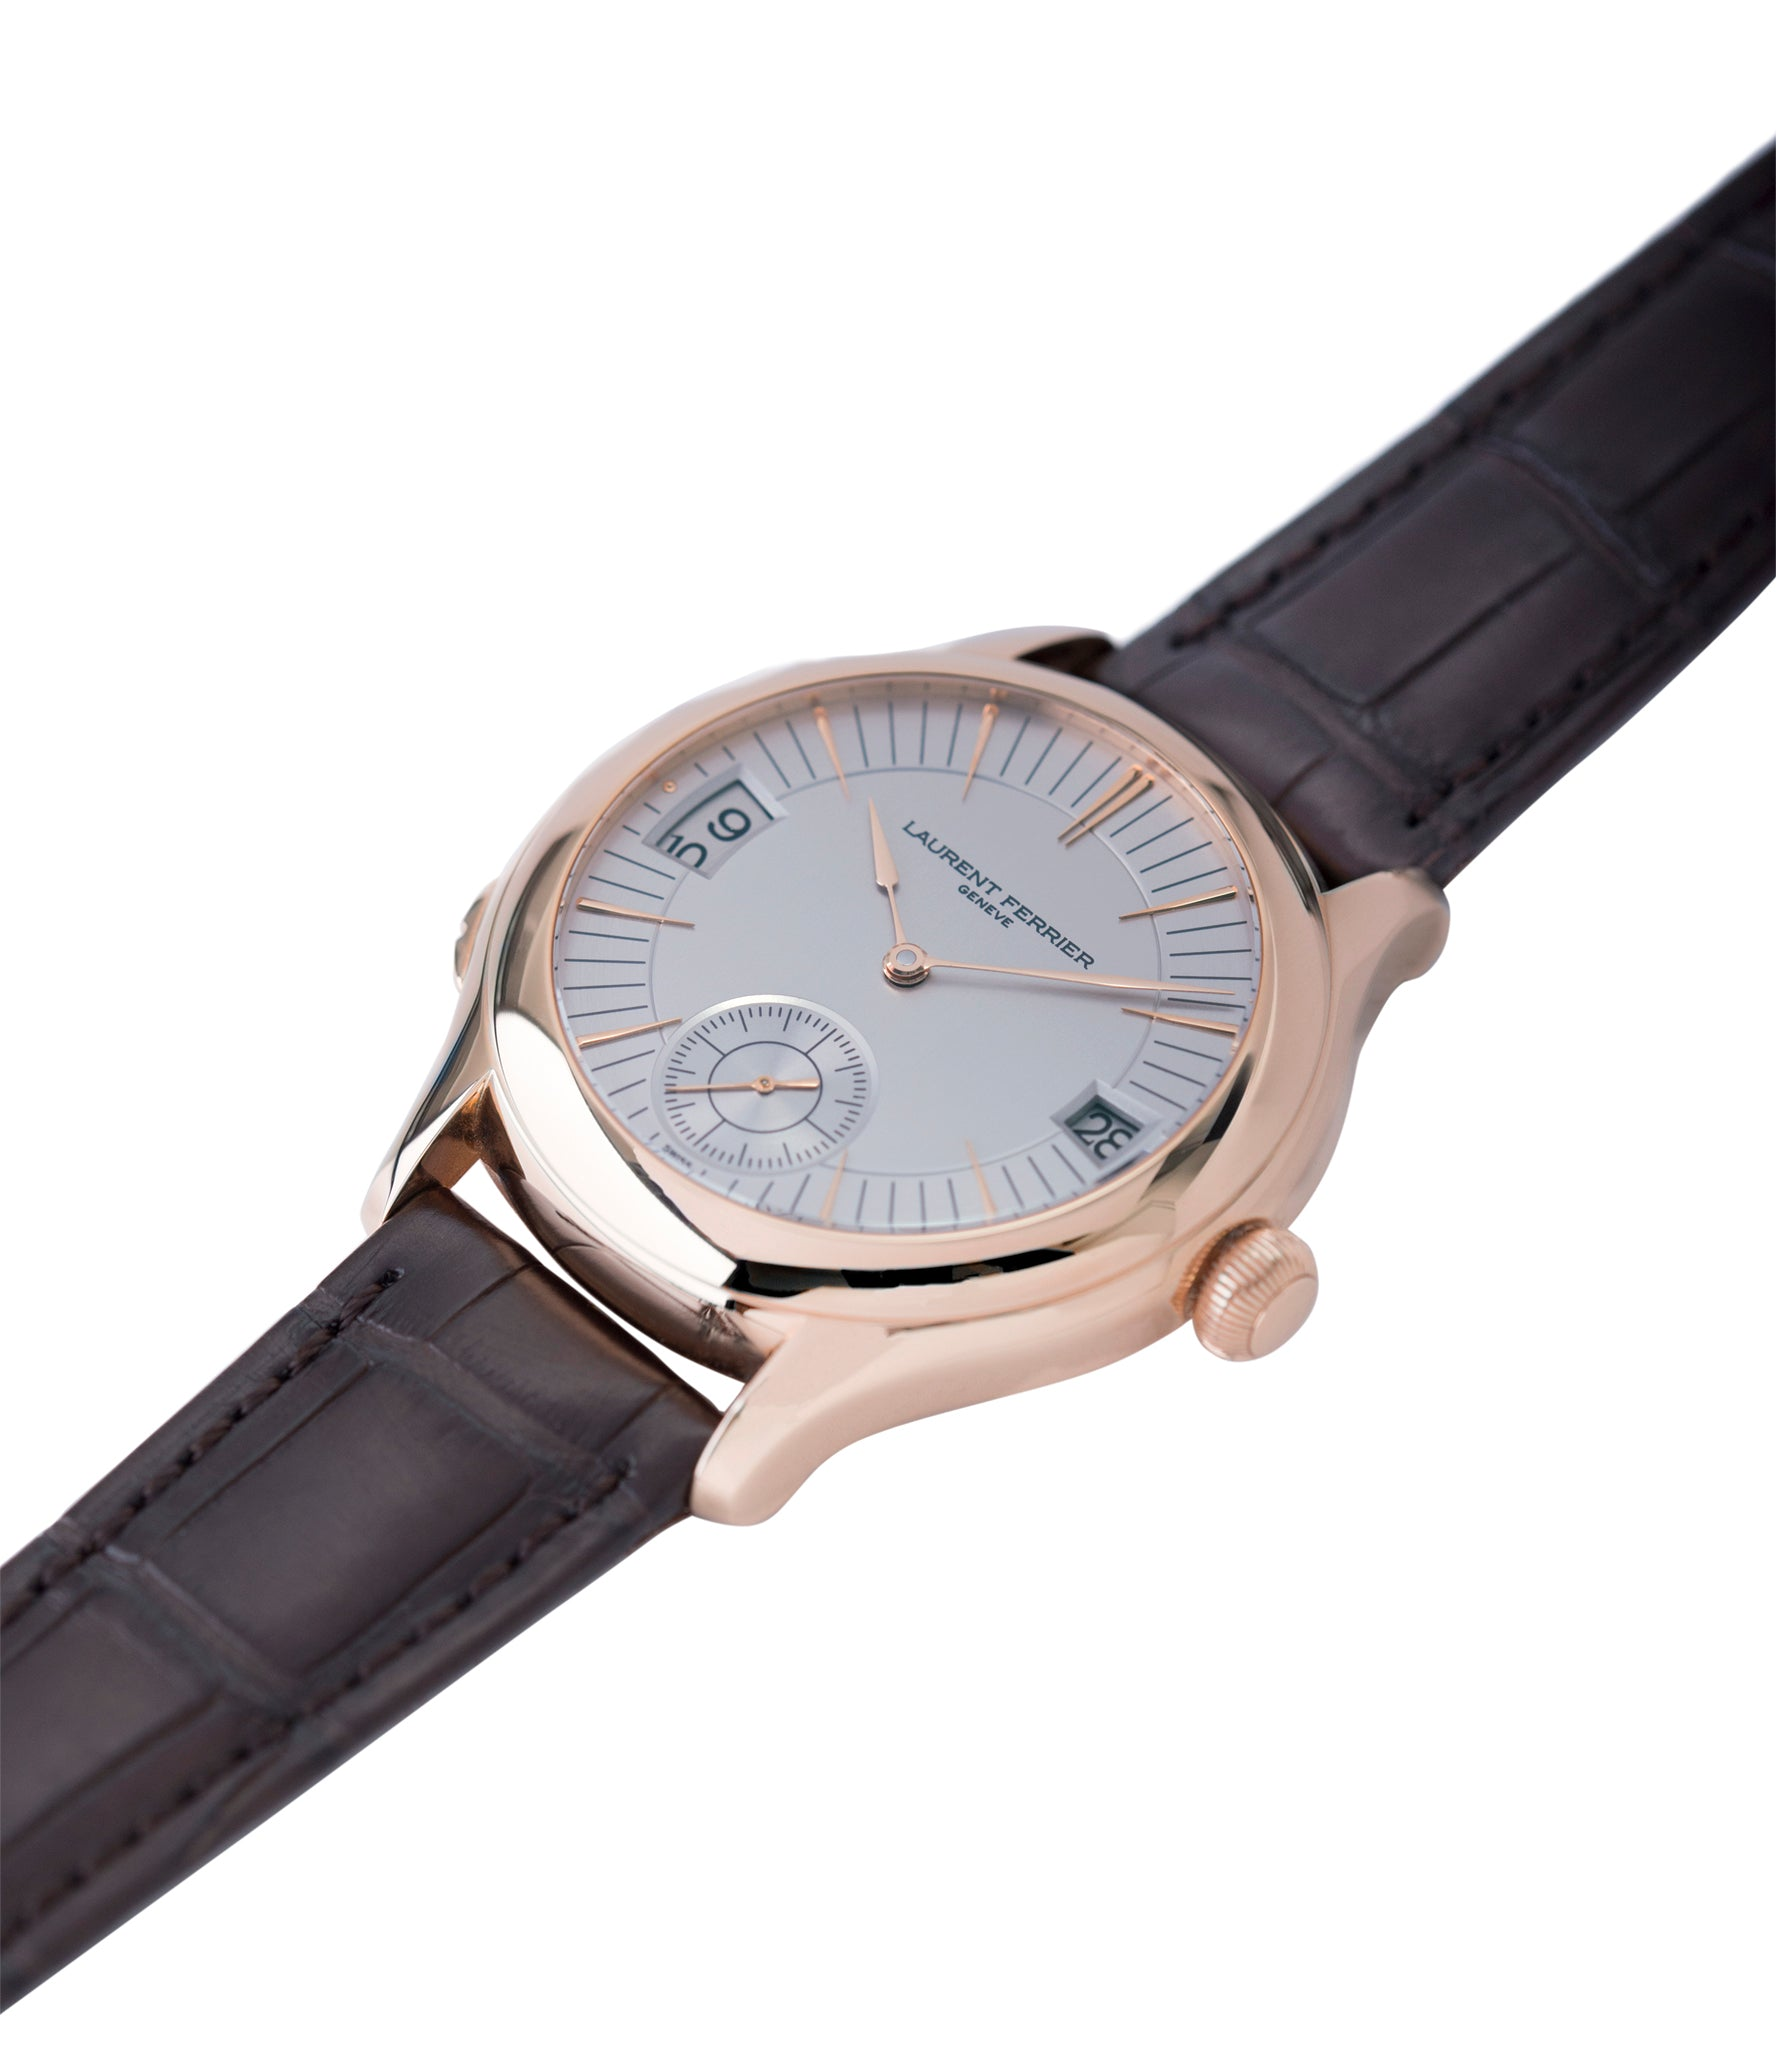 buy preowned Laurent Ferrier Galet Traveller Micro Rotor LF 230.01 rose gold watch additional prototype dial for sale online at A Collected Man London UK approved reseller of preowned independent watchmakers